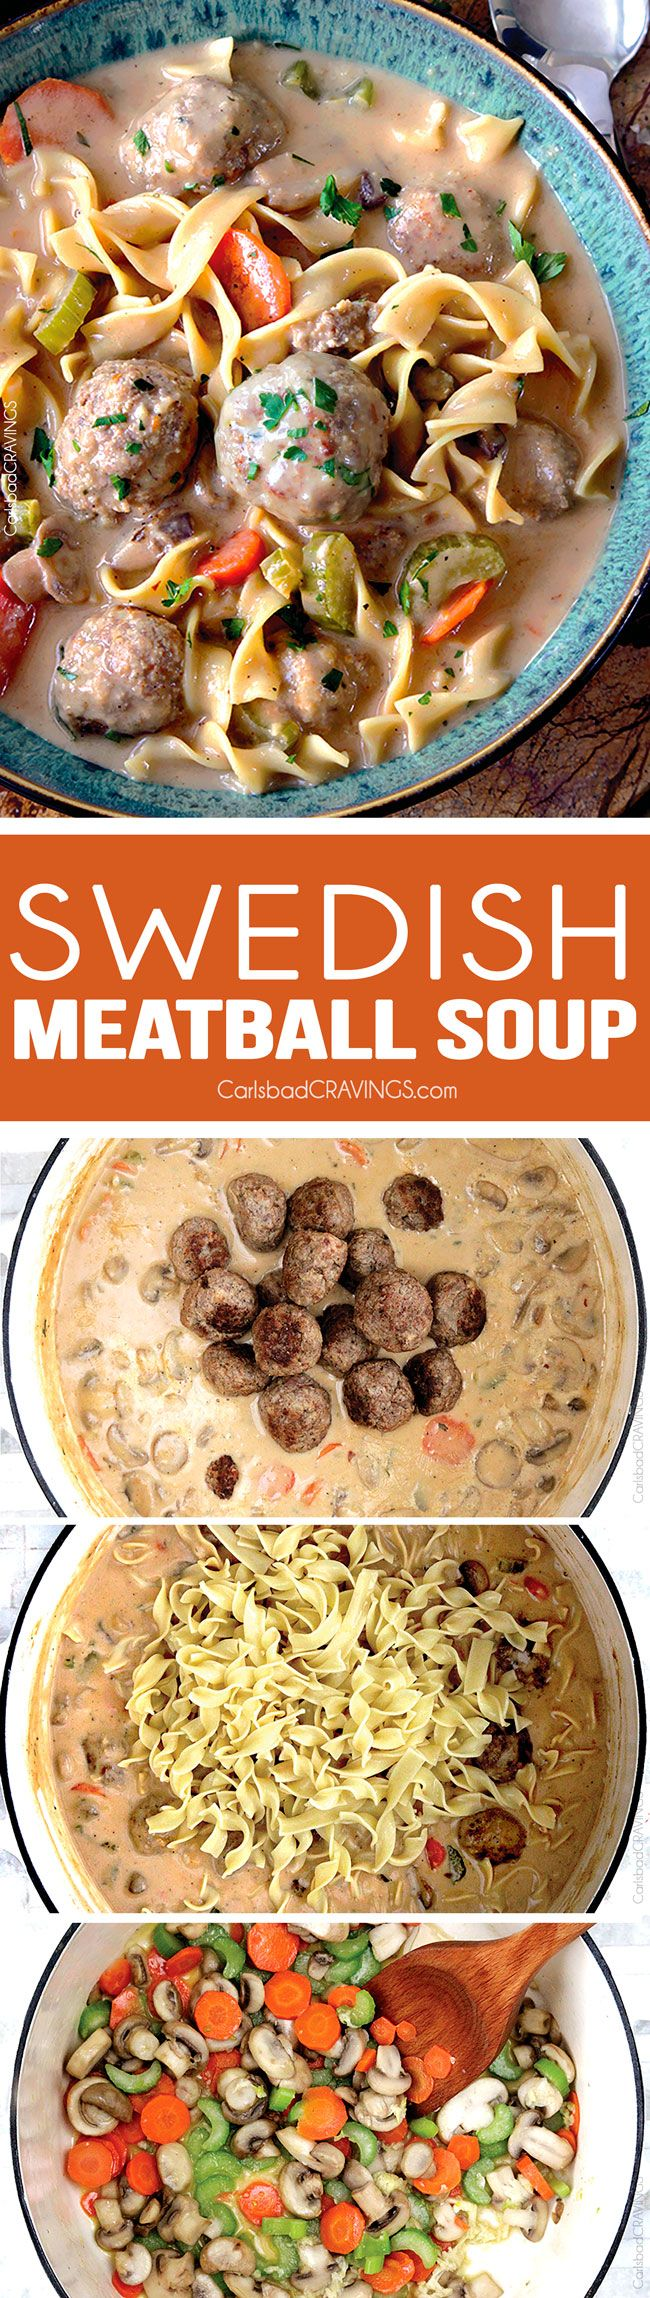 Swedish Meatball Soup - my favorite way to eat Swedish meatballs and this meal goes from meatballs to soup in a flash with the most tender, flavorful meatballs in a luscious creamy brown gravy broth s